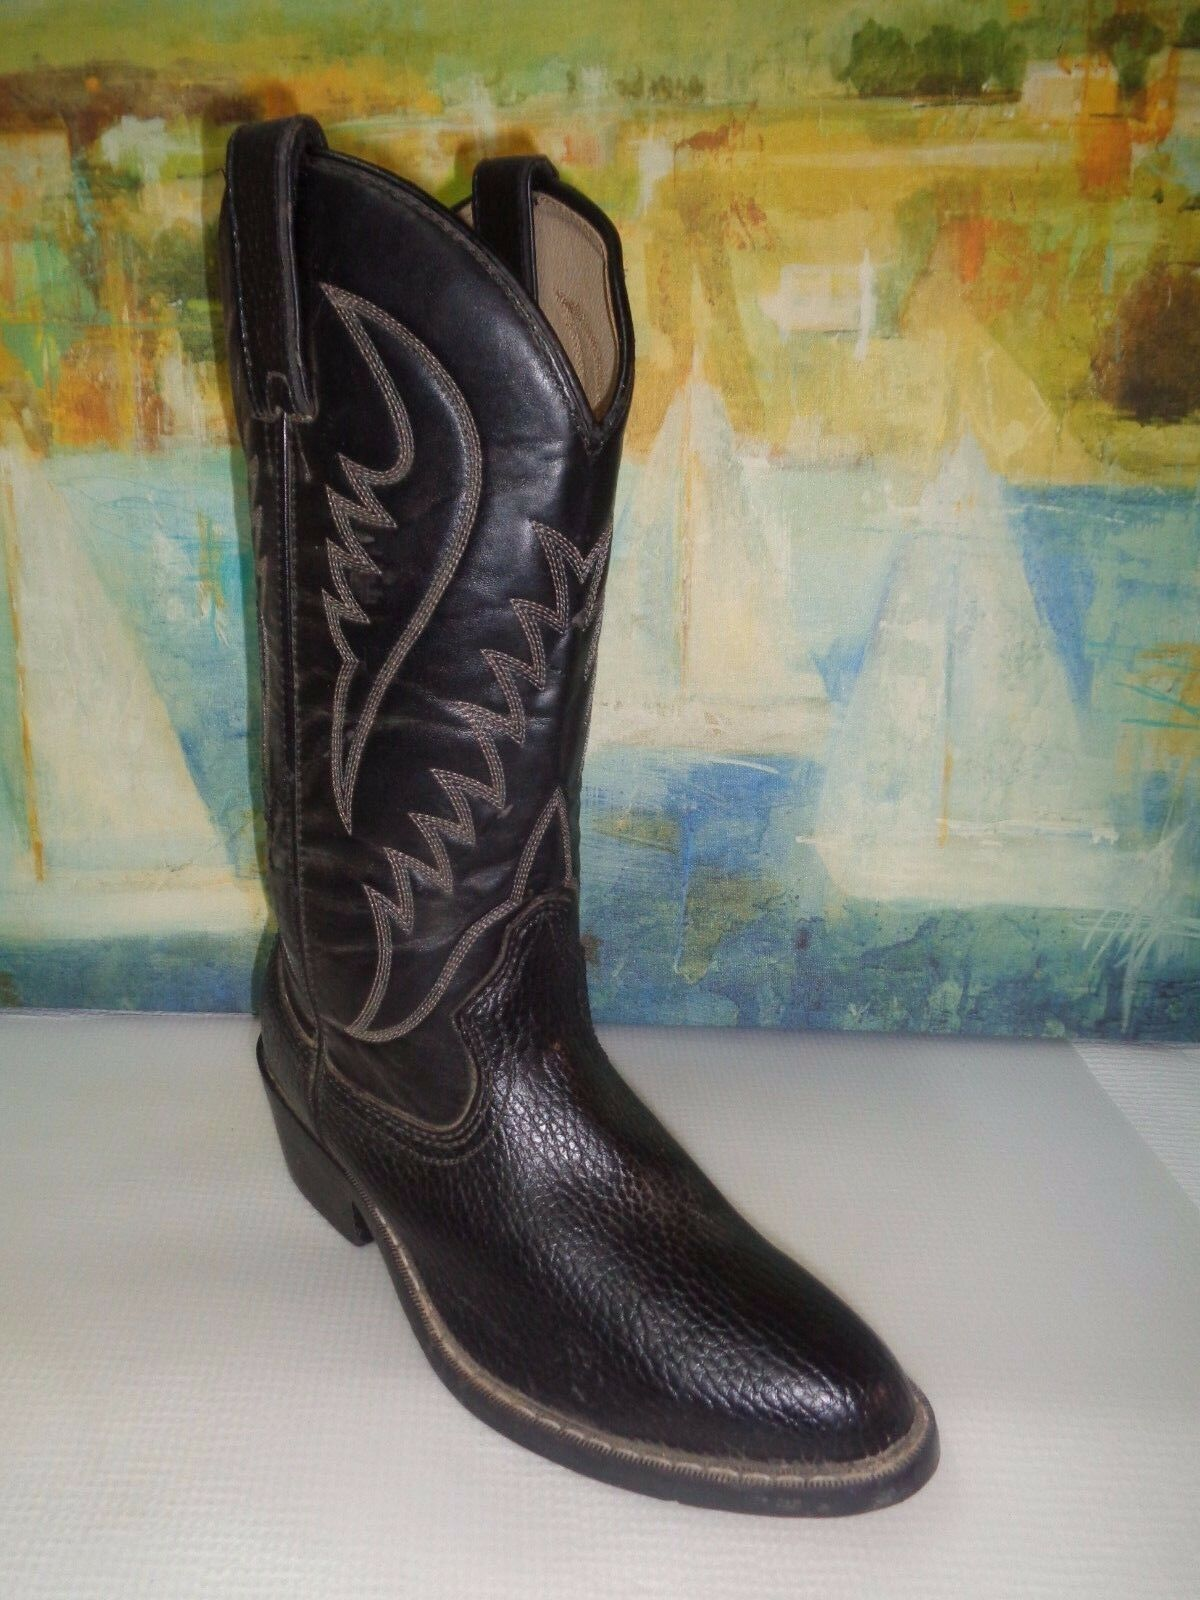 Black Leather EXPRESS RIDER Western Boots Men's  sz  7.5